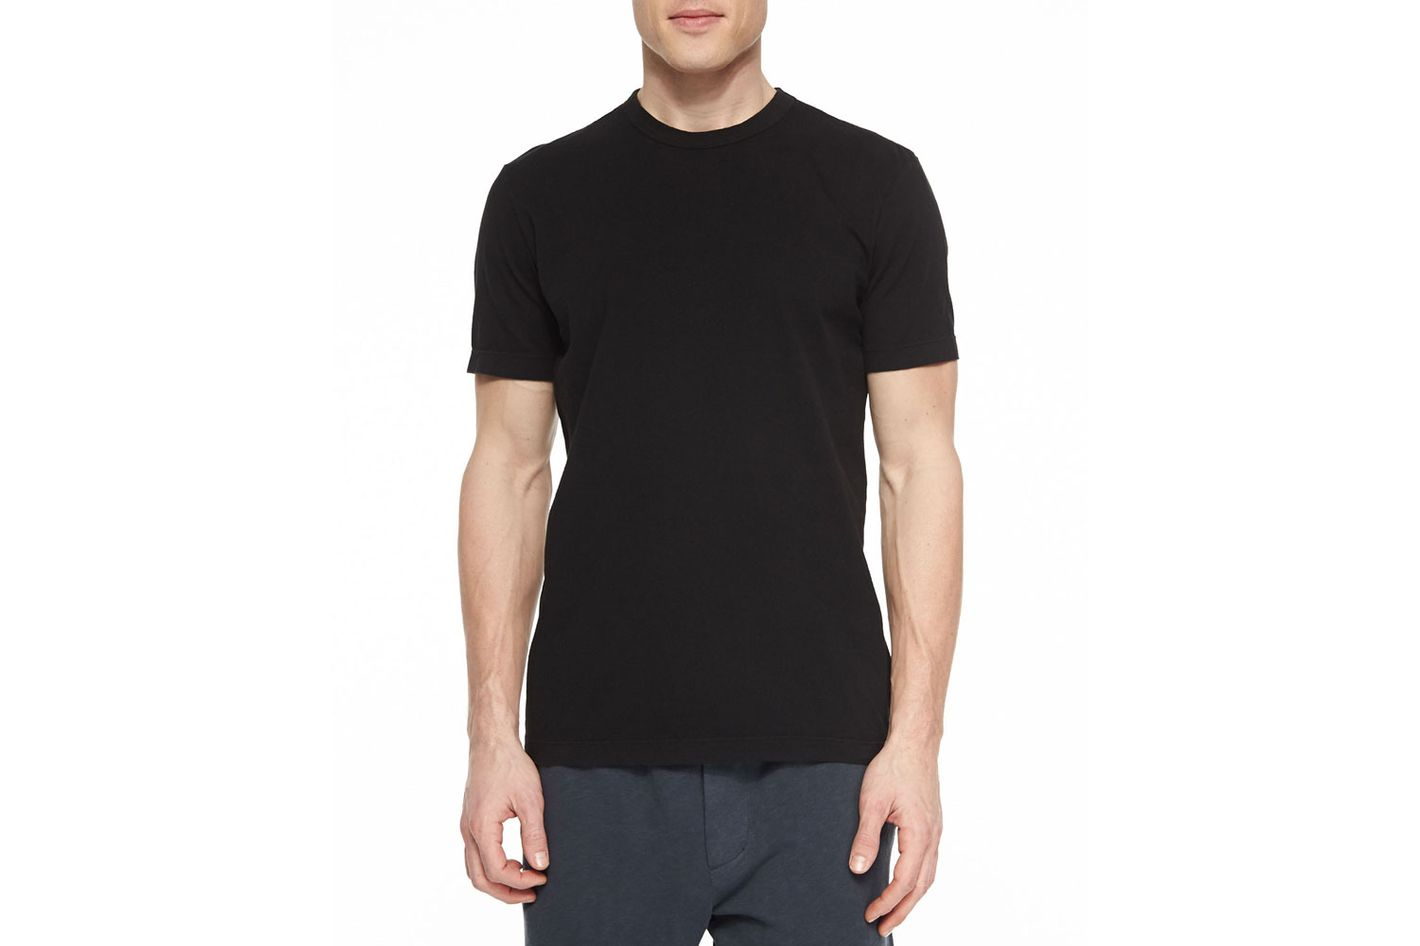 Find great deals on eBay for black tee shirt. Shop with confidence.